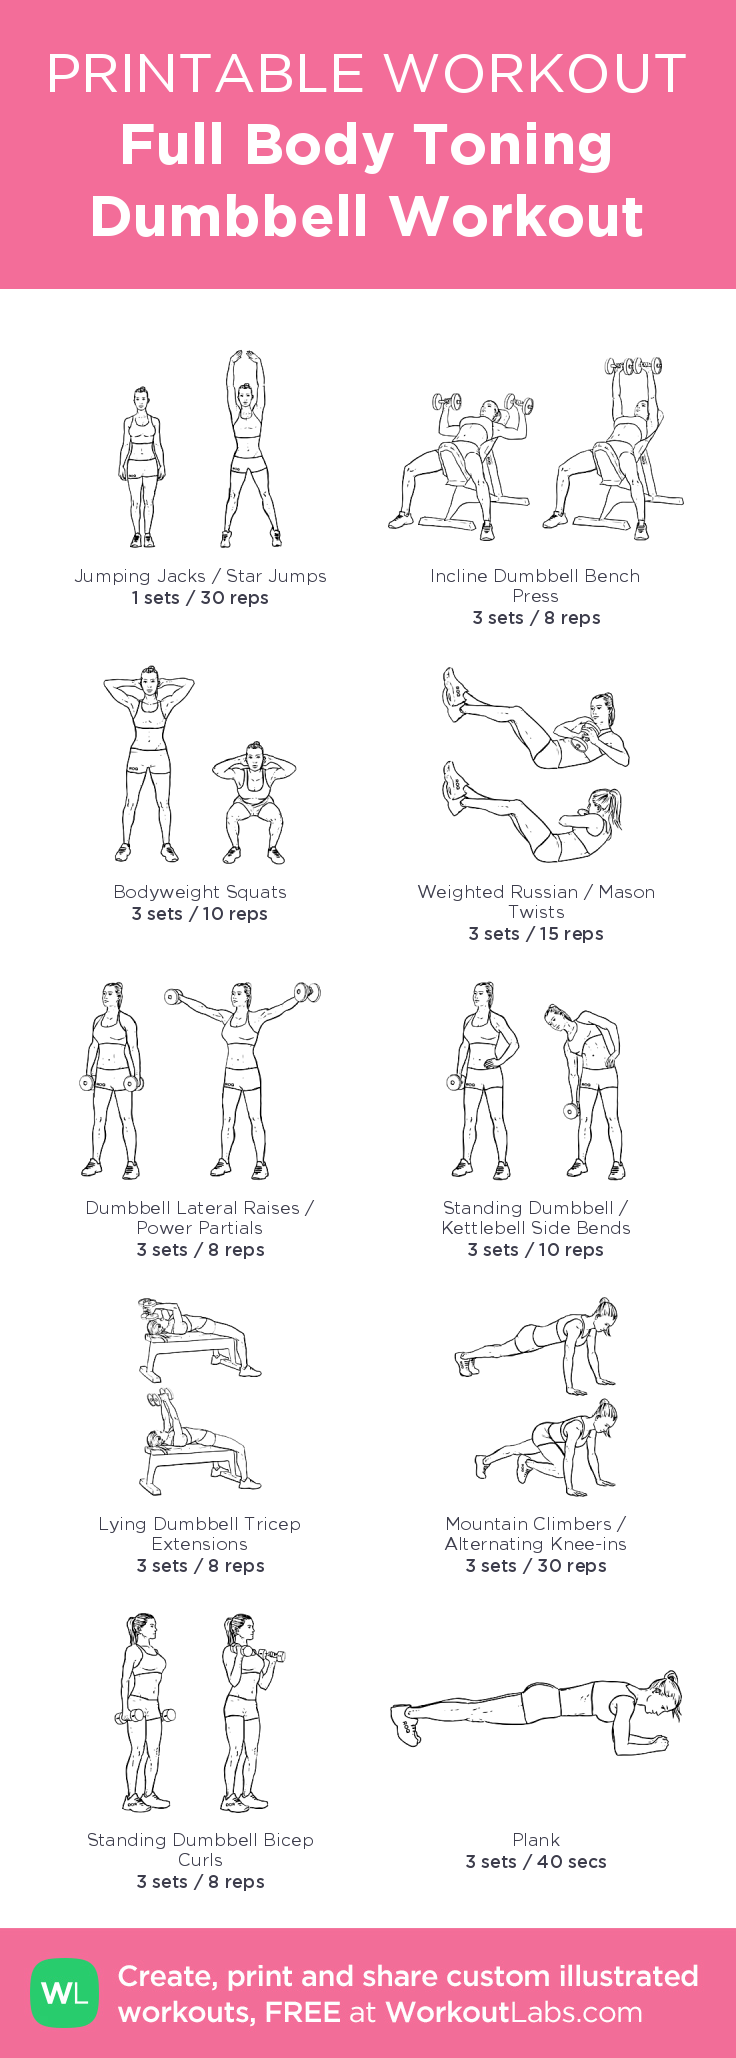 Full Body Toning Dumbbell Workout Illustrated Exercise Plan Created At WorkoutLabs O Click For A Printable PDF And To Build Your Own Customworkout